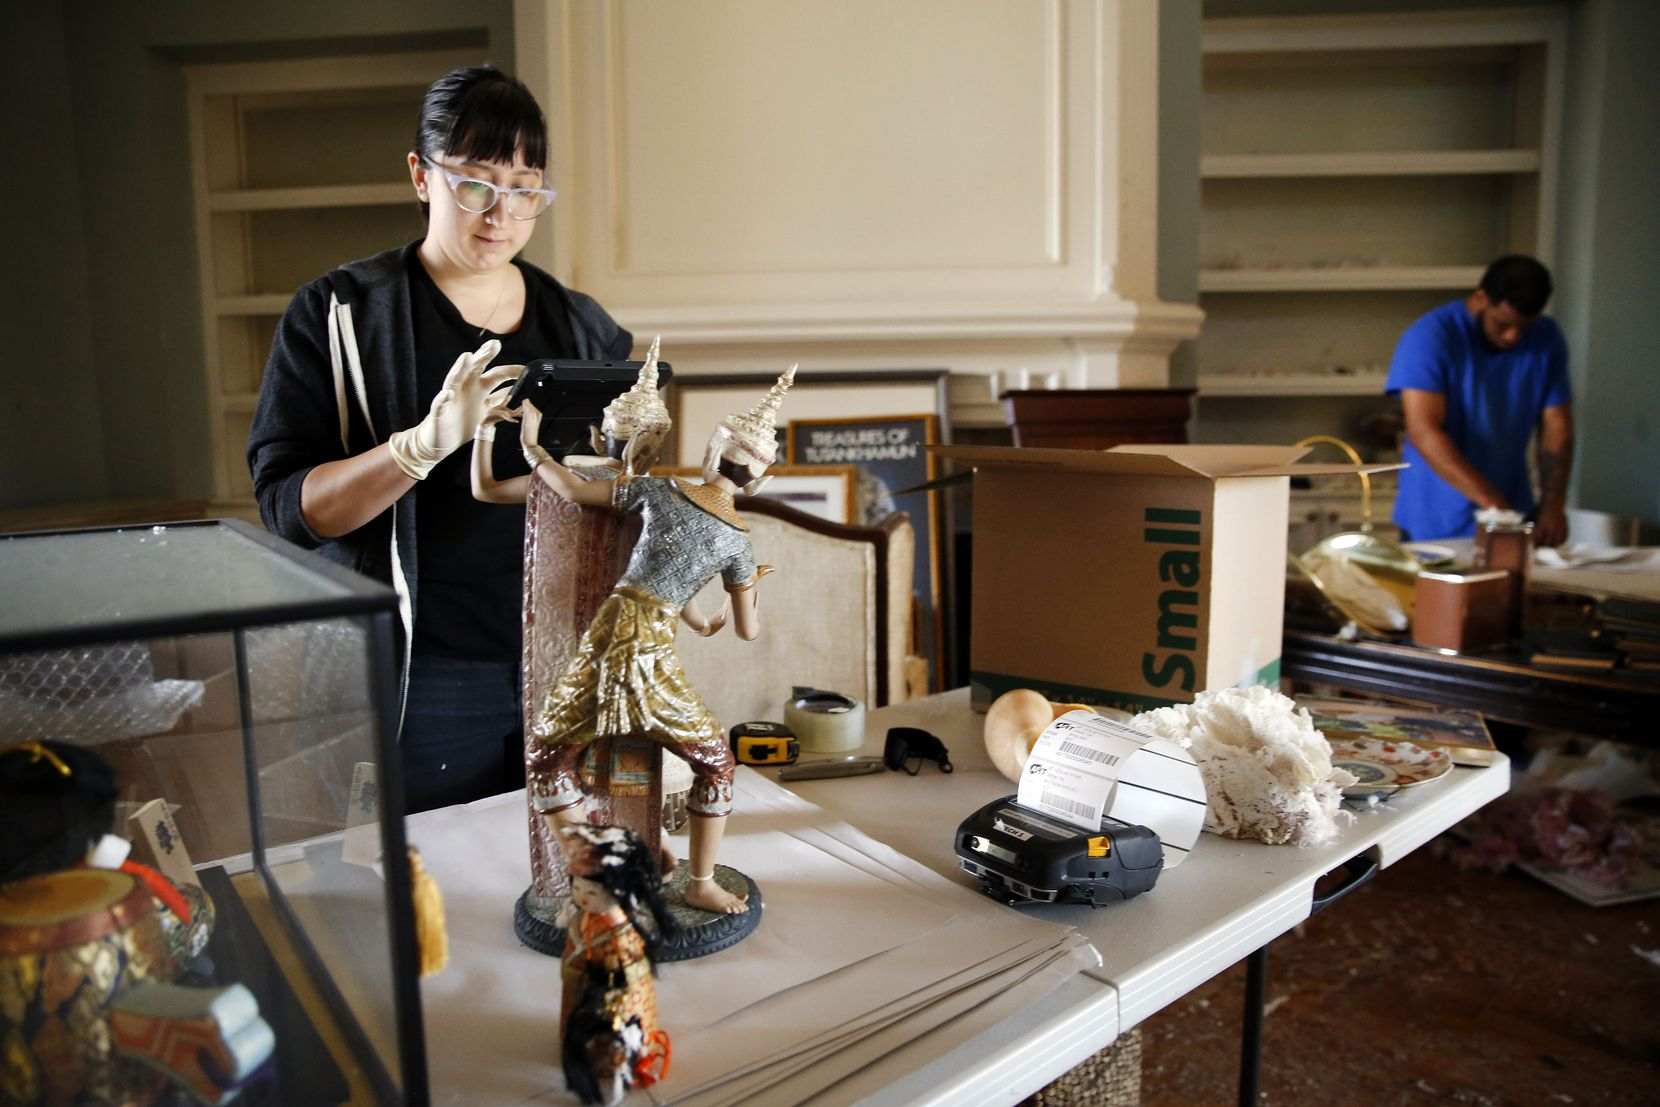 Nina Klaser (left) of Art of Dallas-Fort Worth, an art recovery and restoration company, catalogues Brenda Schneider's family heirlooms and art collectibles in her Preston Hollow neighborhood home in Dallas, Tuesday, Oct. 22, 2019.